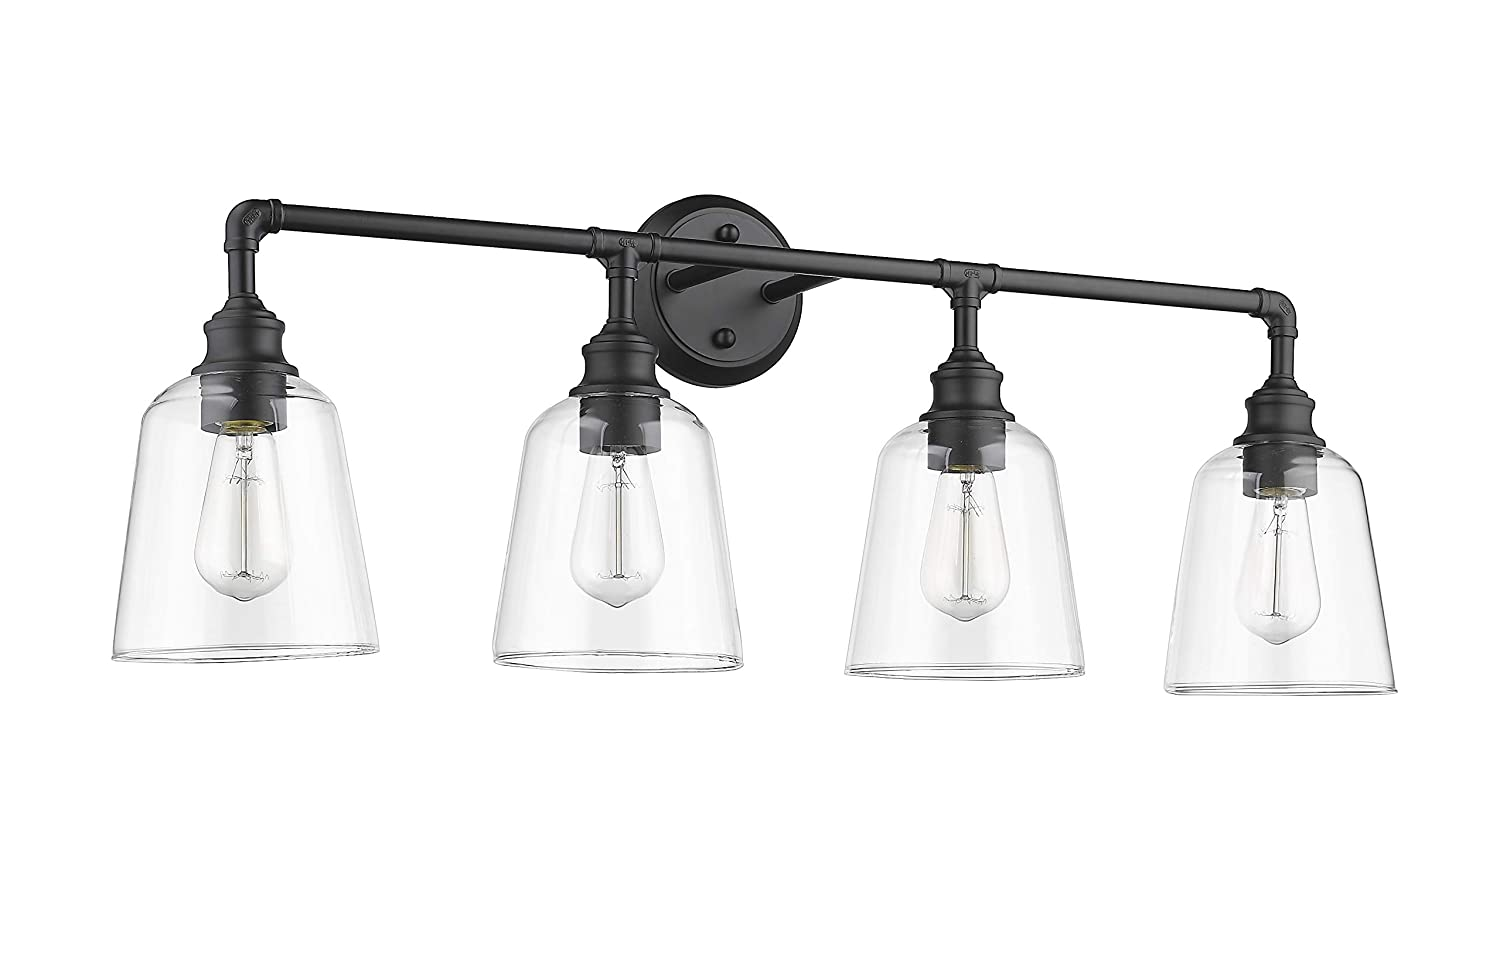 4 Light Matte Black Vanity- 35.87 W x 12.87 H x 8 E- Clear Glass Shade- 4x60W E27 – Bulbs Not Included- Vivio by HOMEnhancements